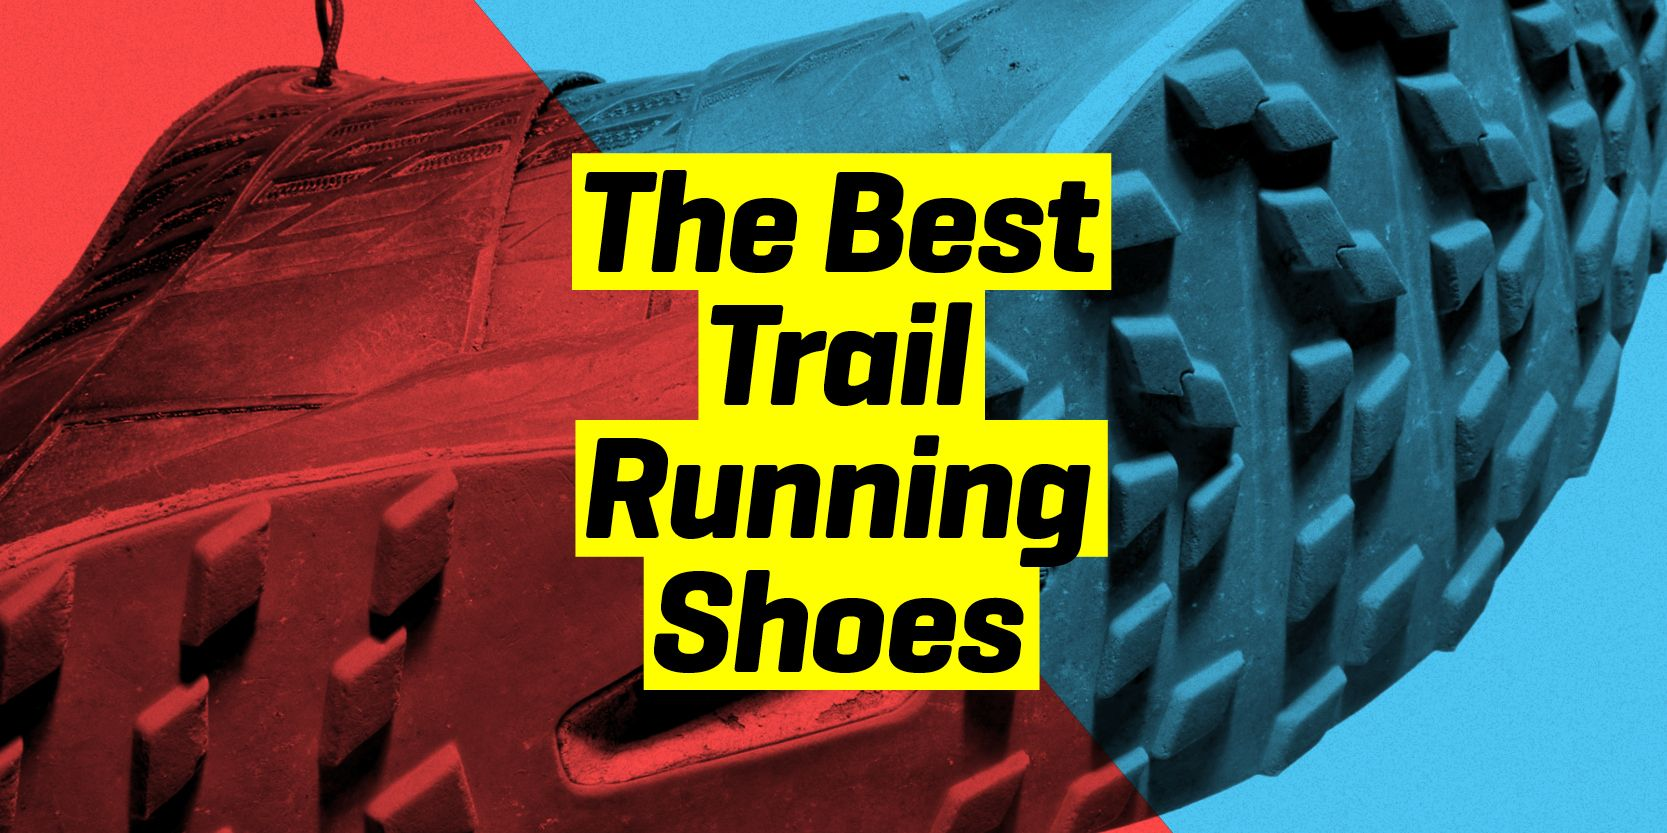 09a8e25ae6707 Best Trail Running Shoes 2019 | Best Off-Road Running Shoes